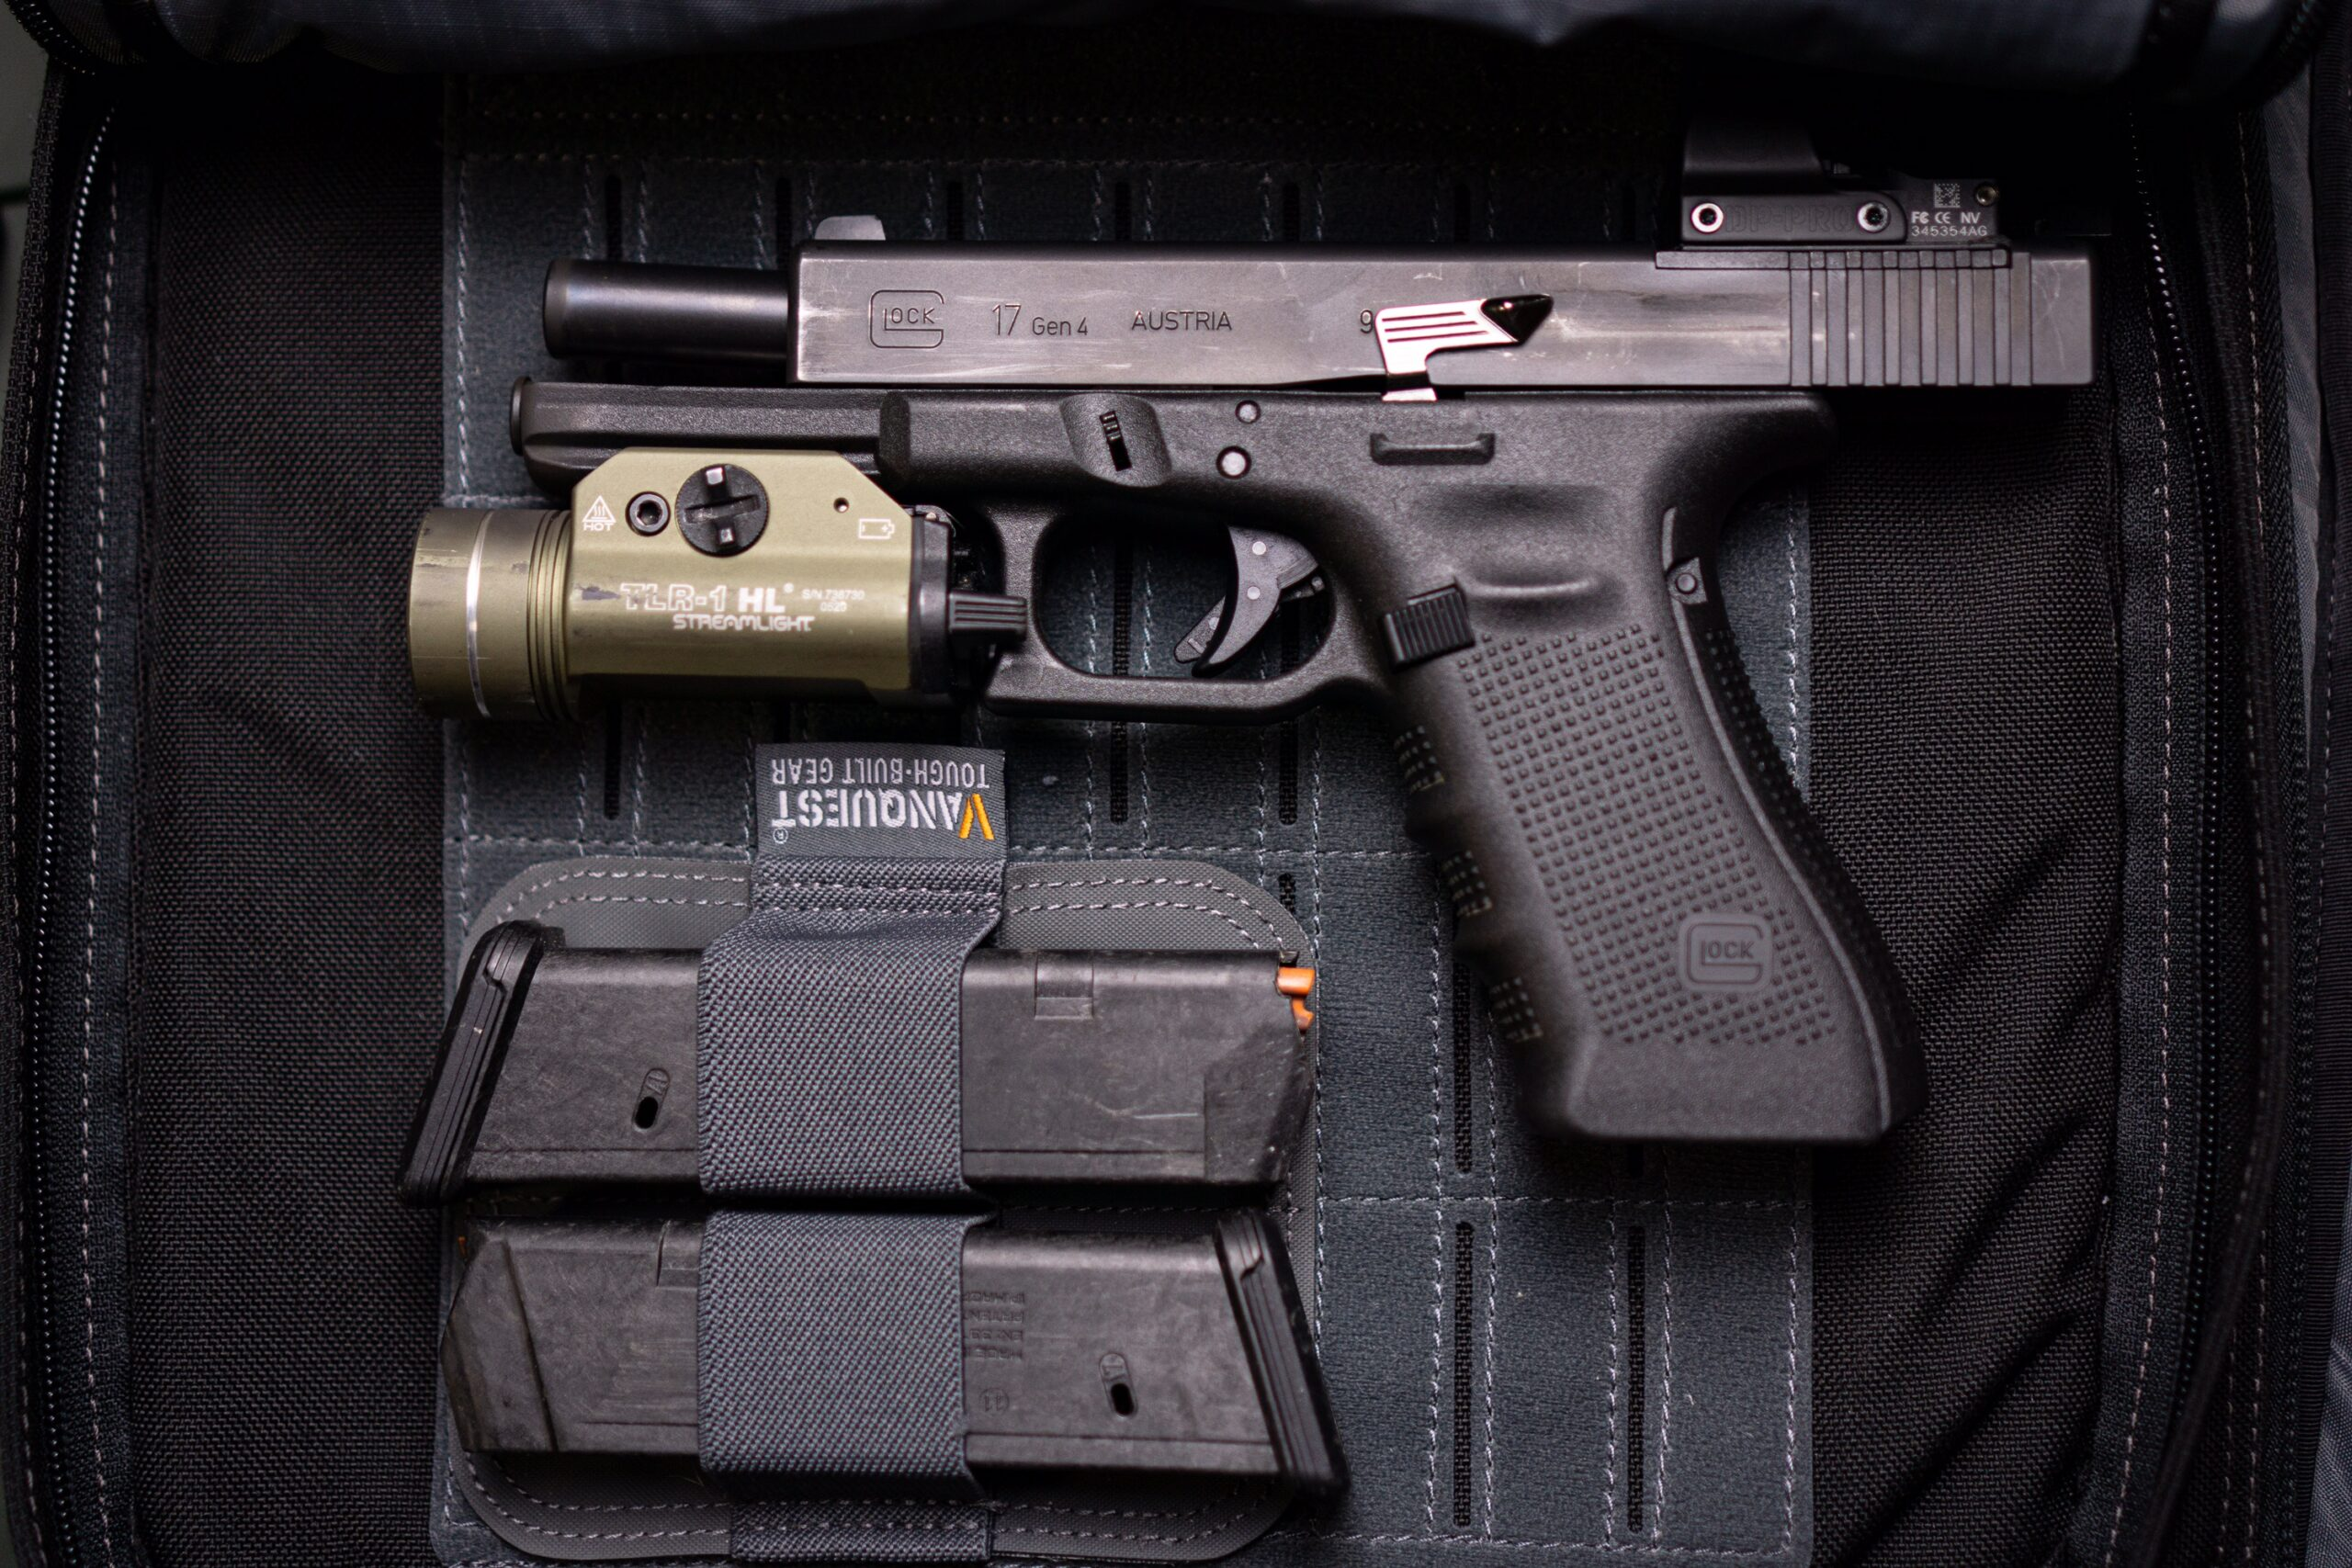 Glock 17 Gen-4 in a pistol bag with spare magazines